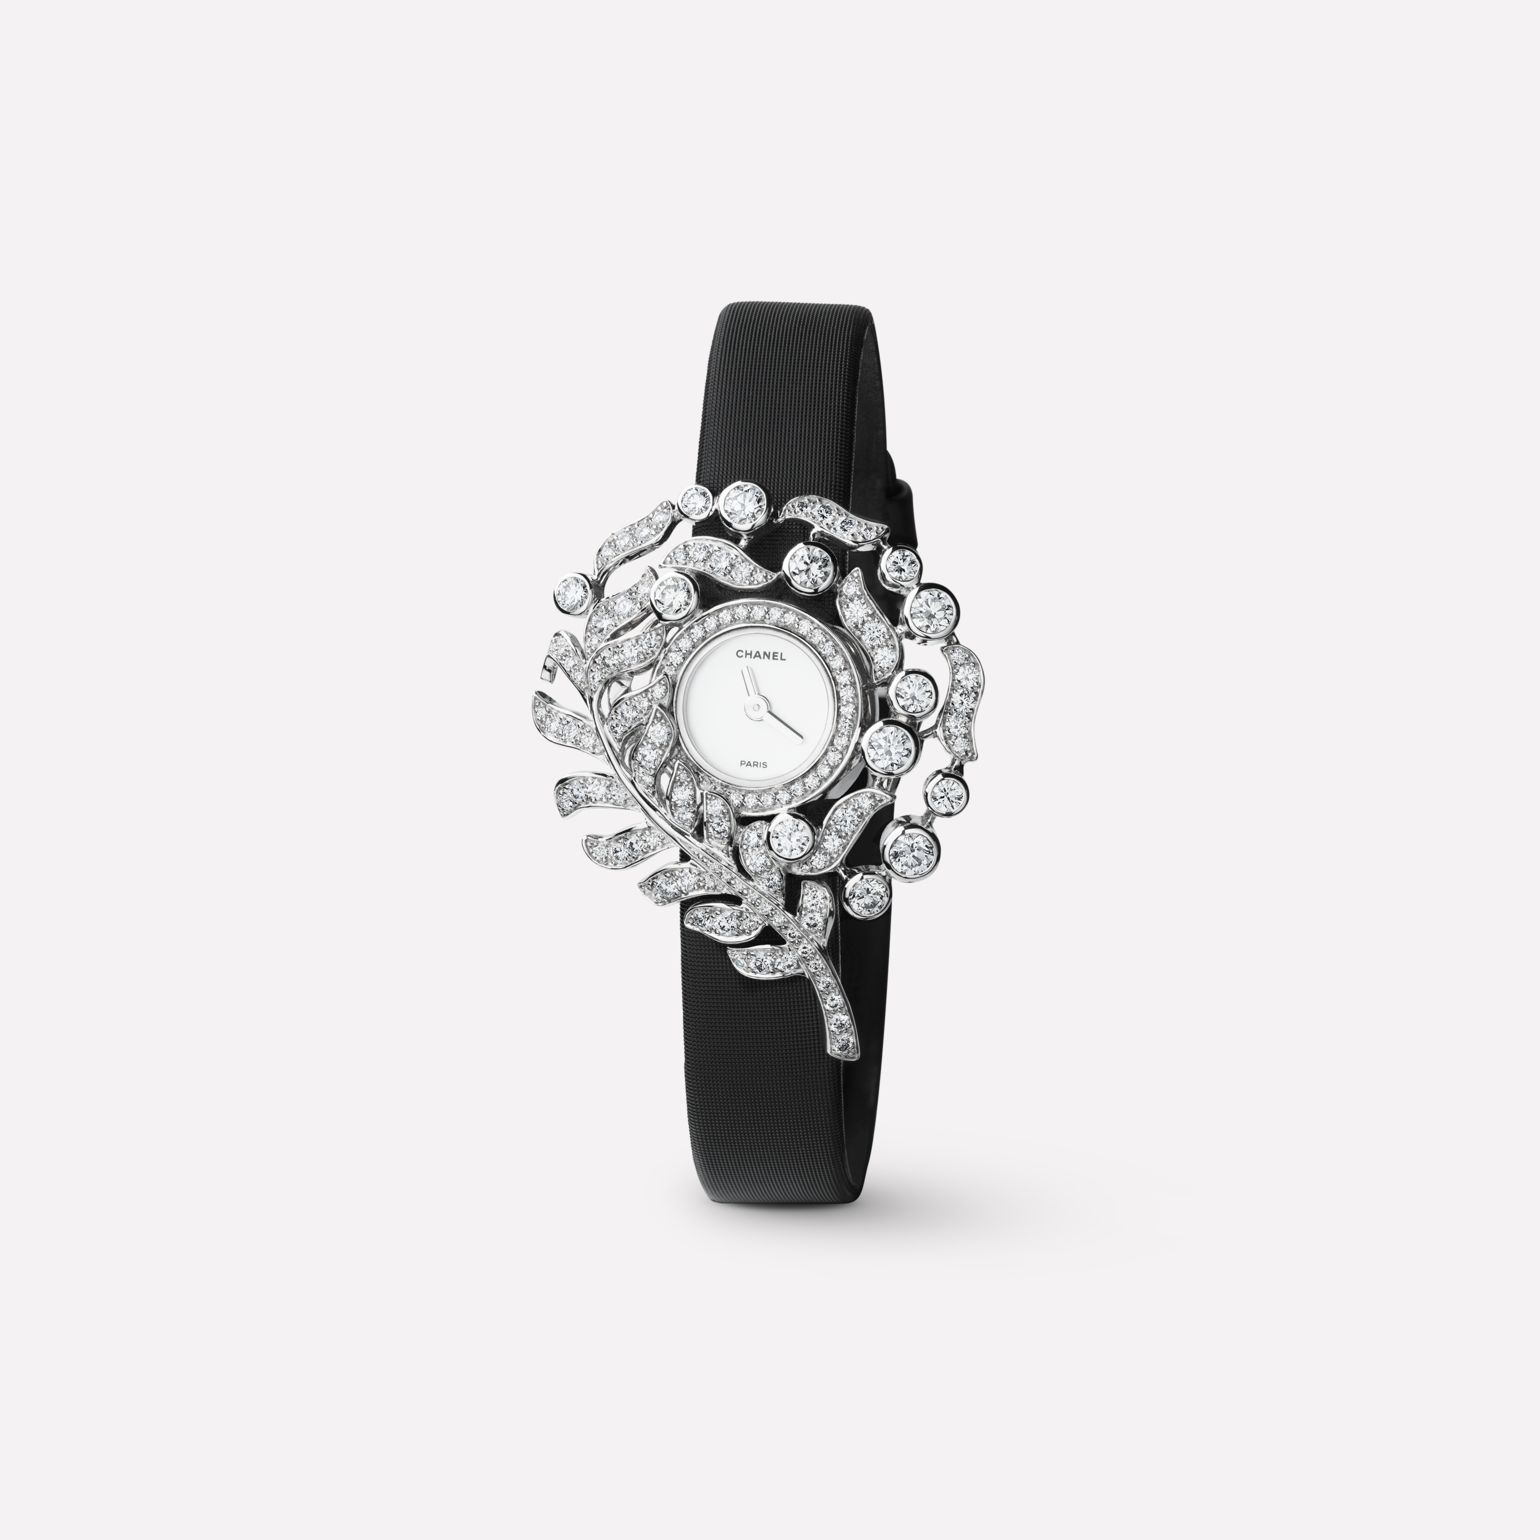 Plume de CHANEL Jewellery Watch Plume necklace in 18K white gold and diamonds